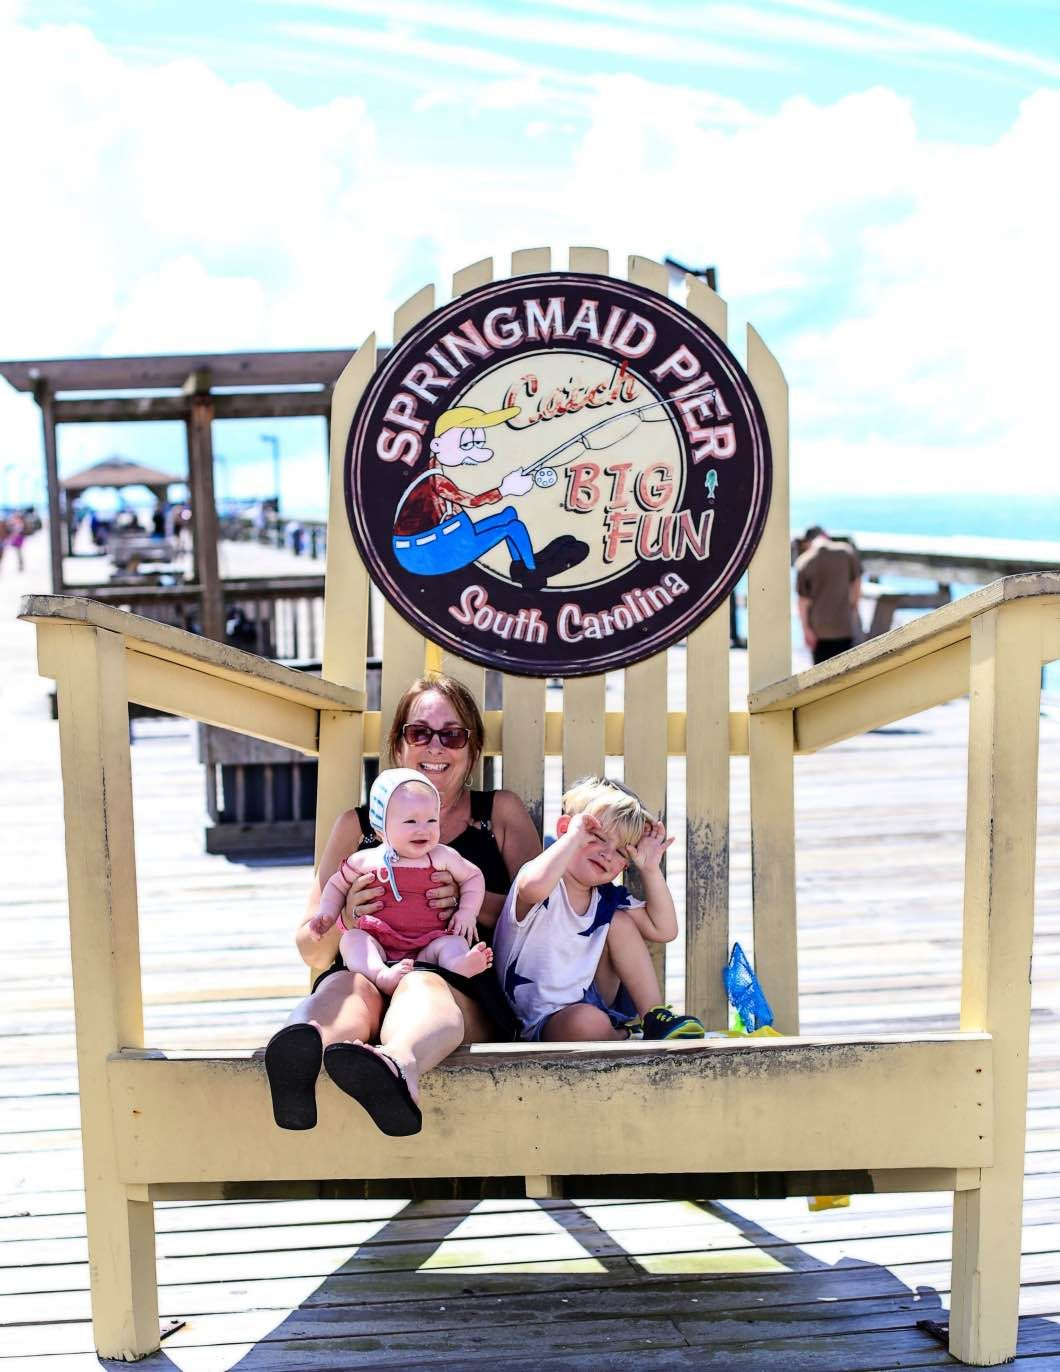 Joe S Retirement Blog Myrtle Beach South Carolina Usa: Myrtle Beach Family Guide